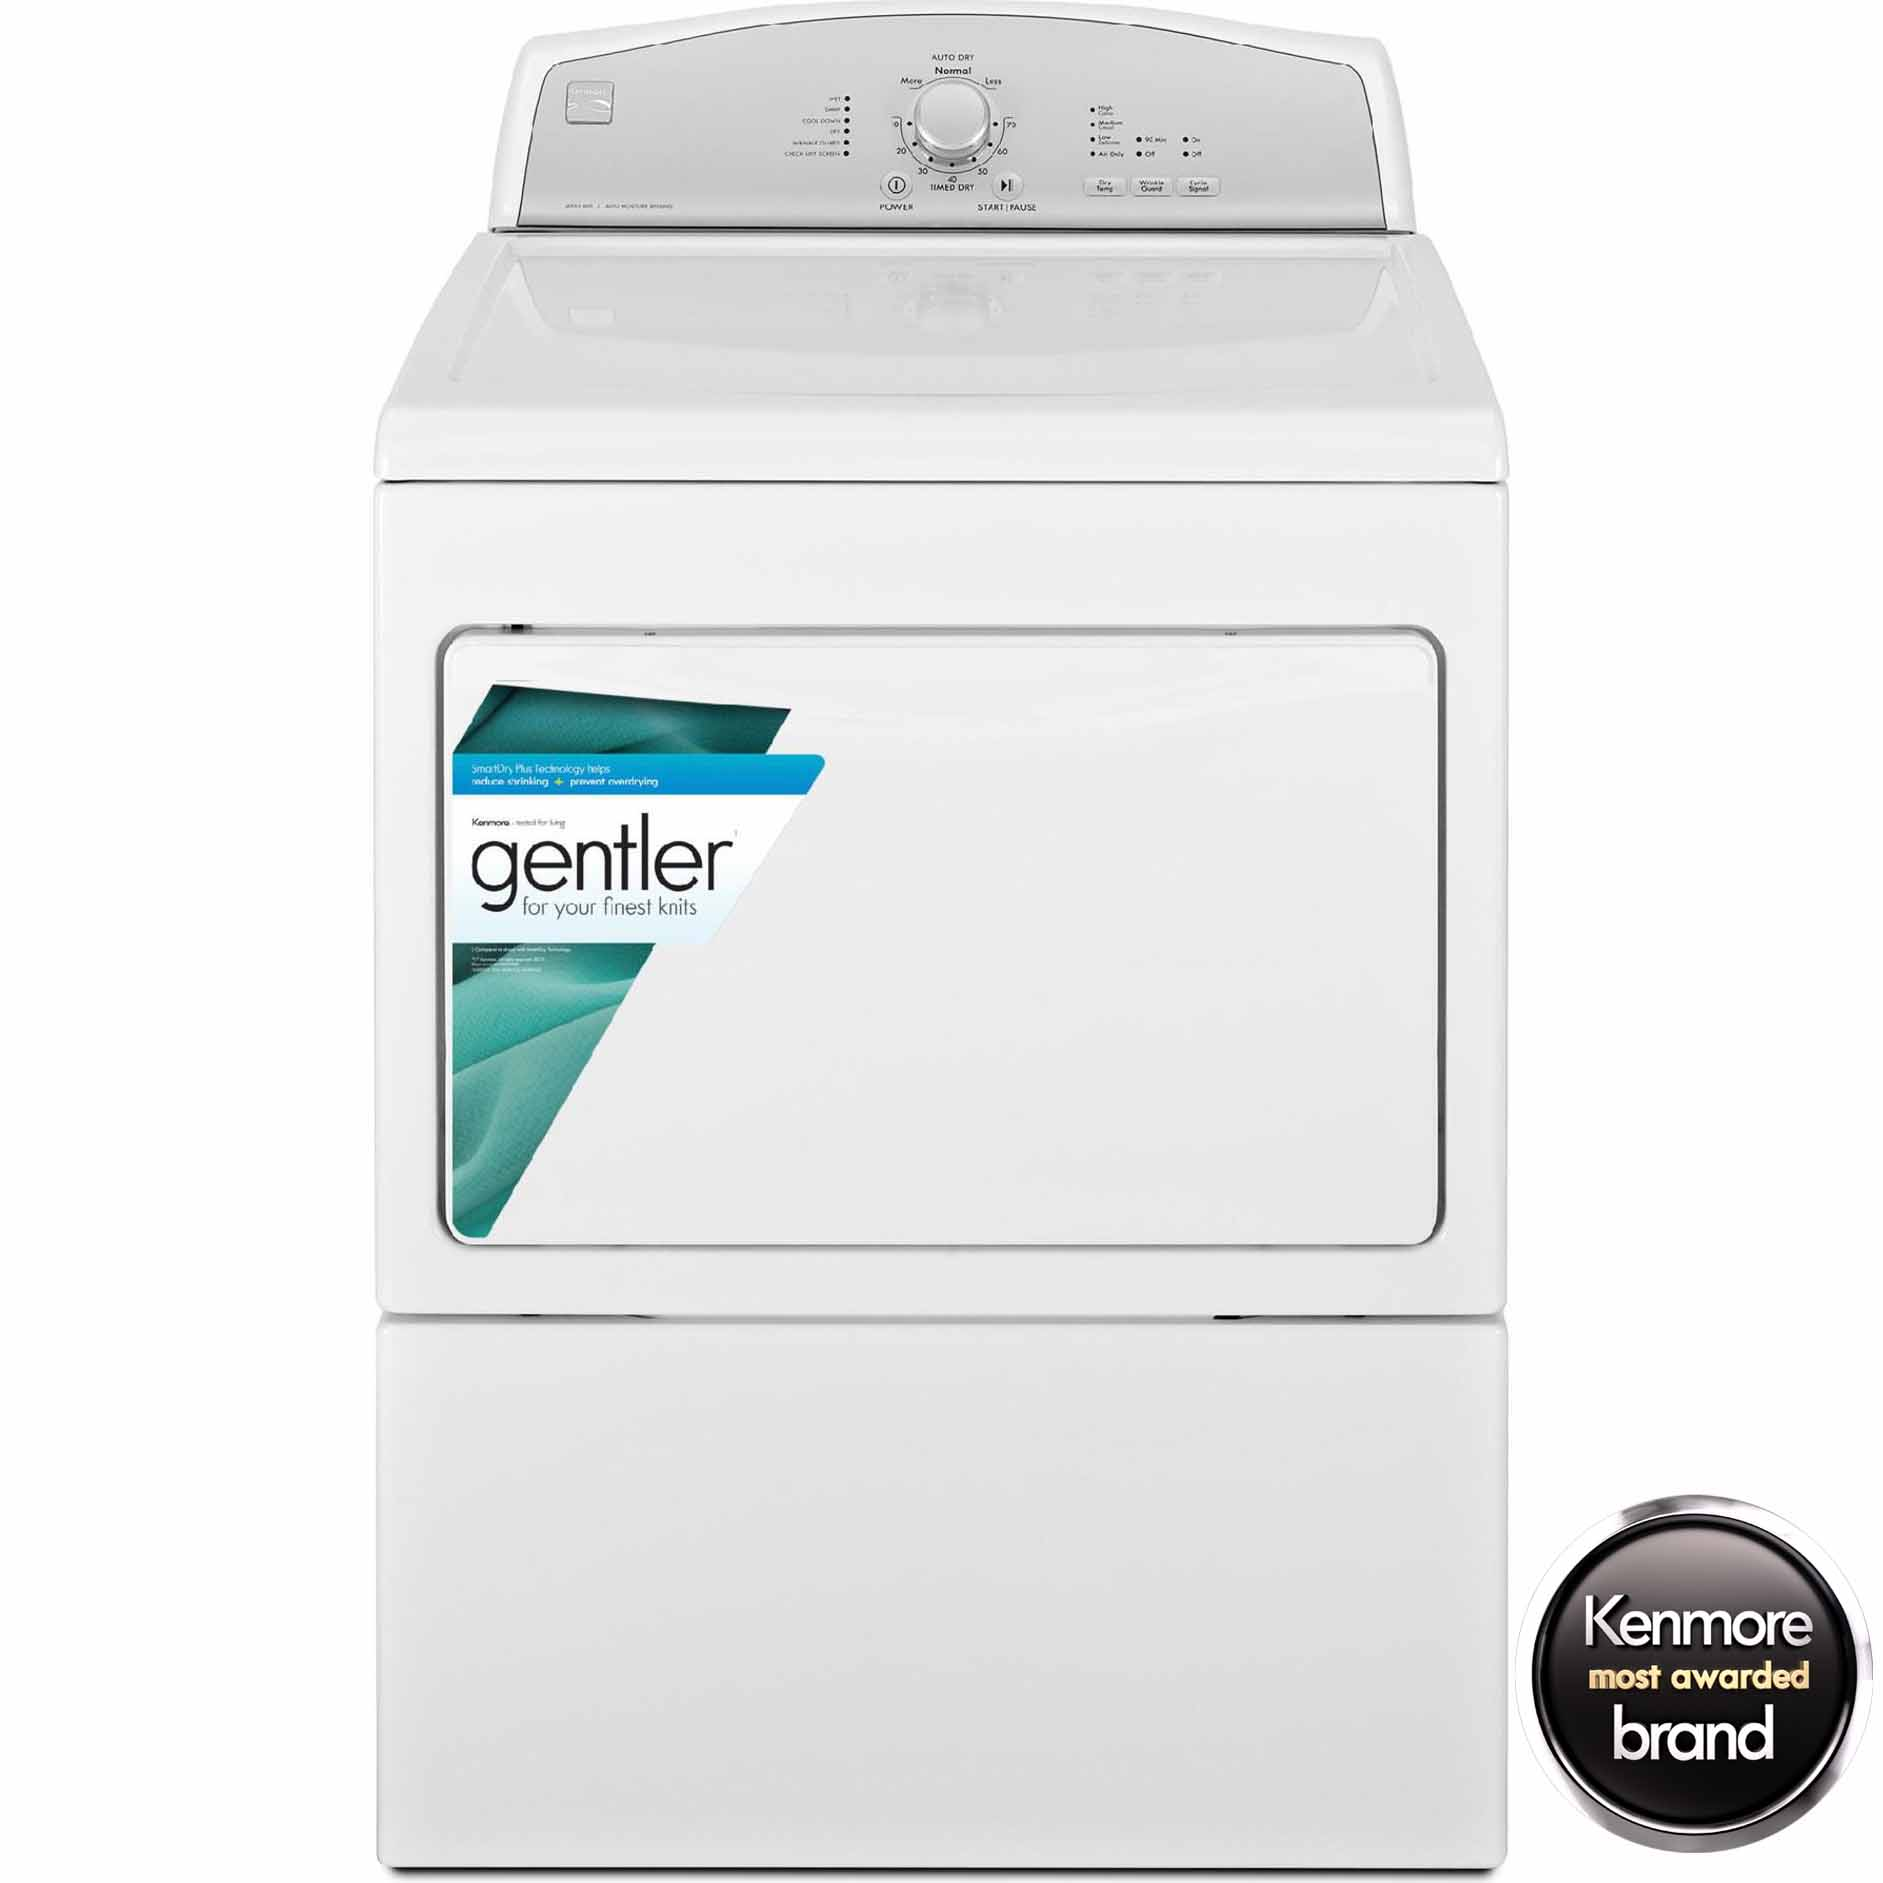 Kenmore 7.5 cu. ft. Electric Dryer w/ Heated Dryer Rack - White